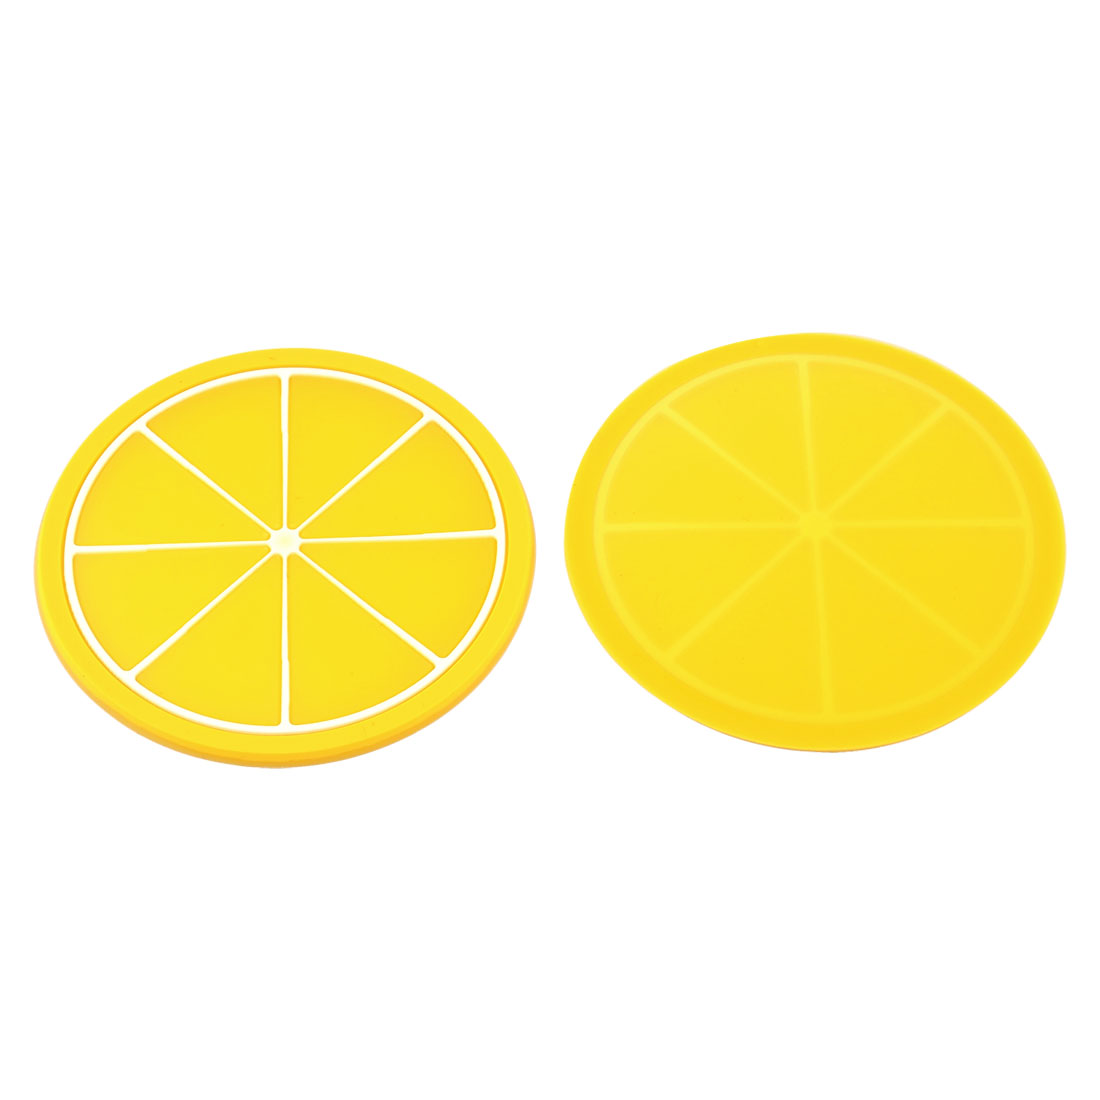 Household Silicone Lemon Shaped Teapot Bottle Cup Coasters Mat Yellow 2 Pcs